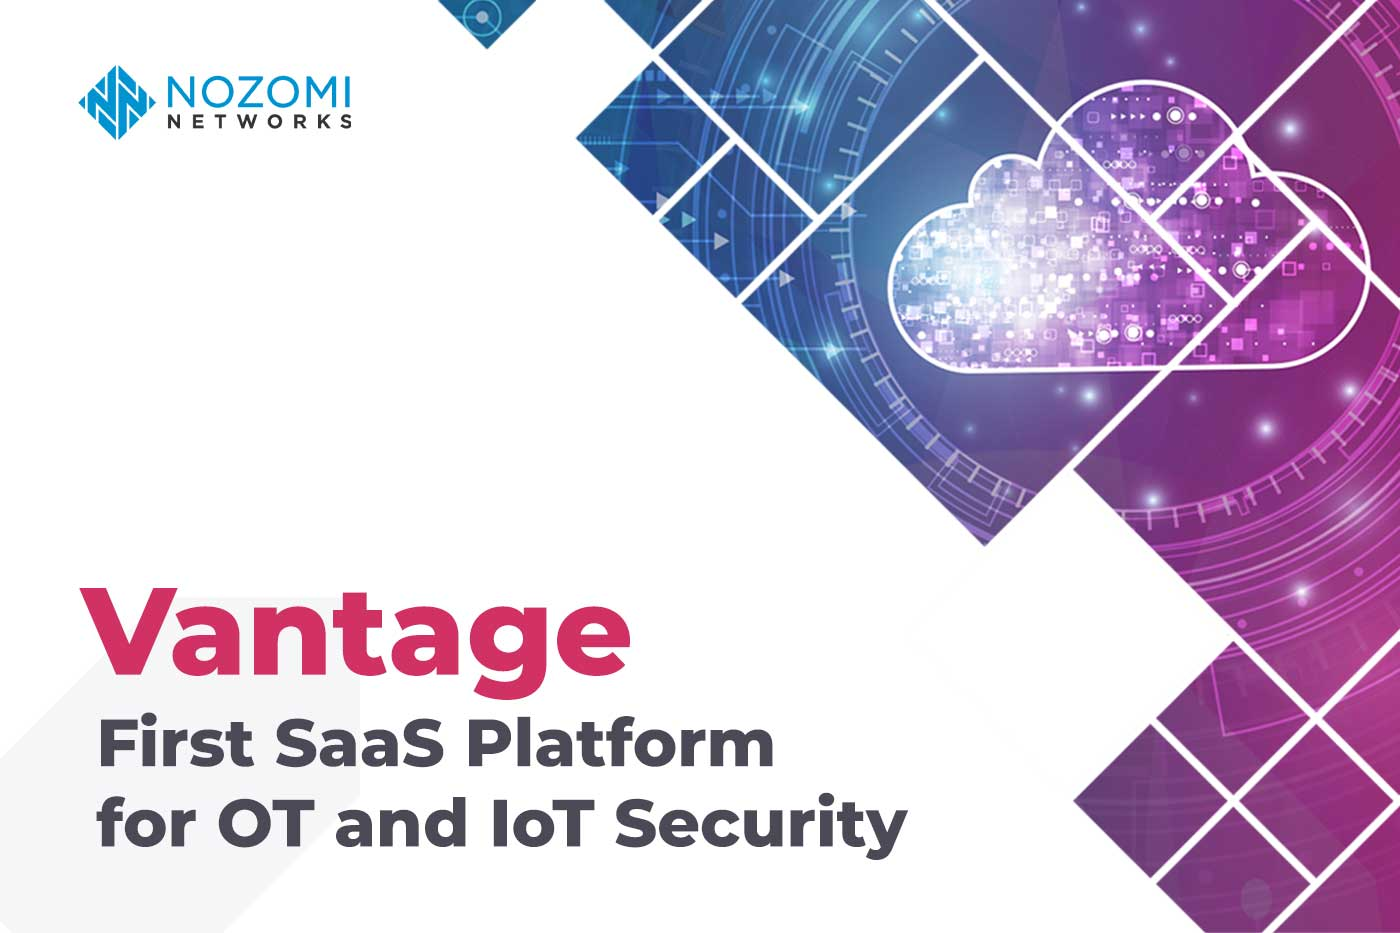 Embrace Cloud-based OT/IoT Cybersecurity Now with Vantage